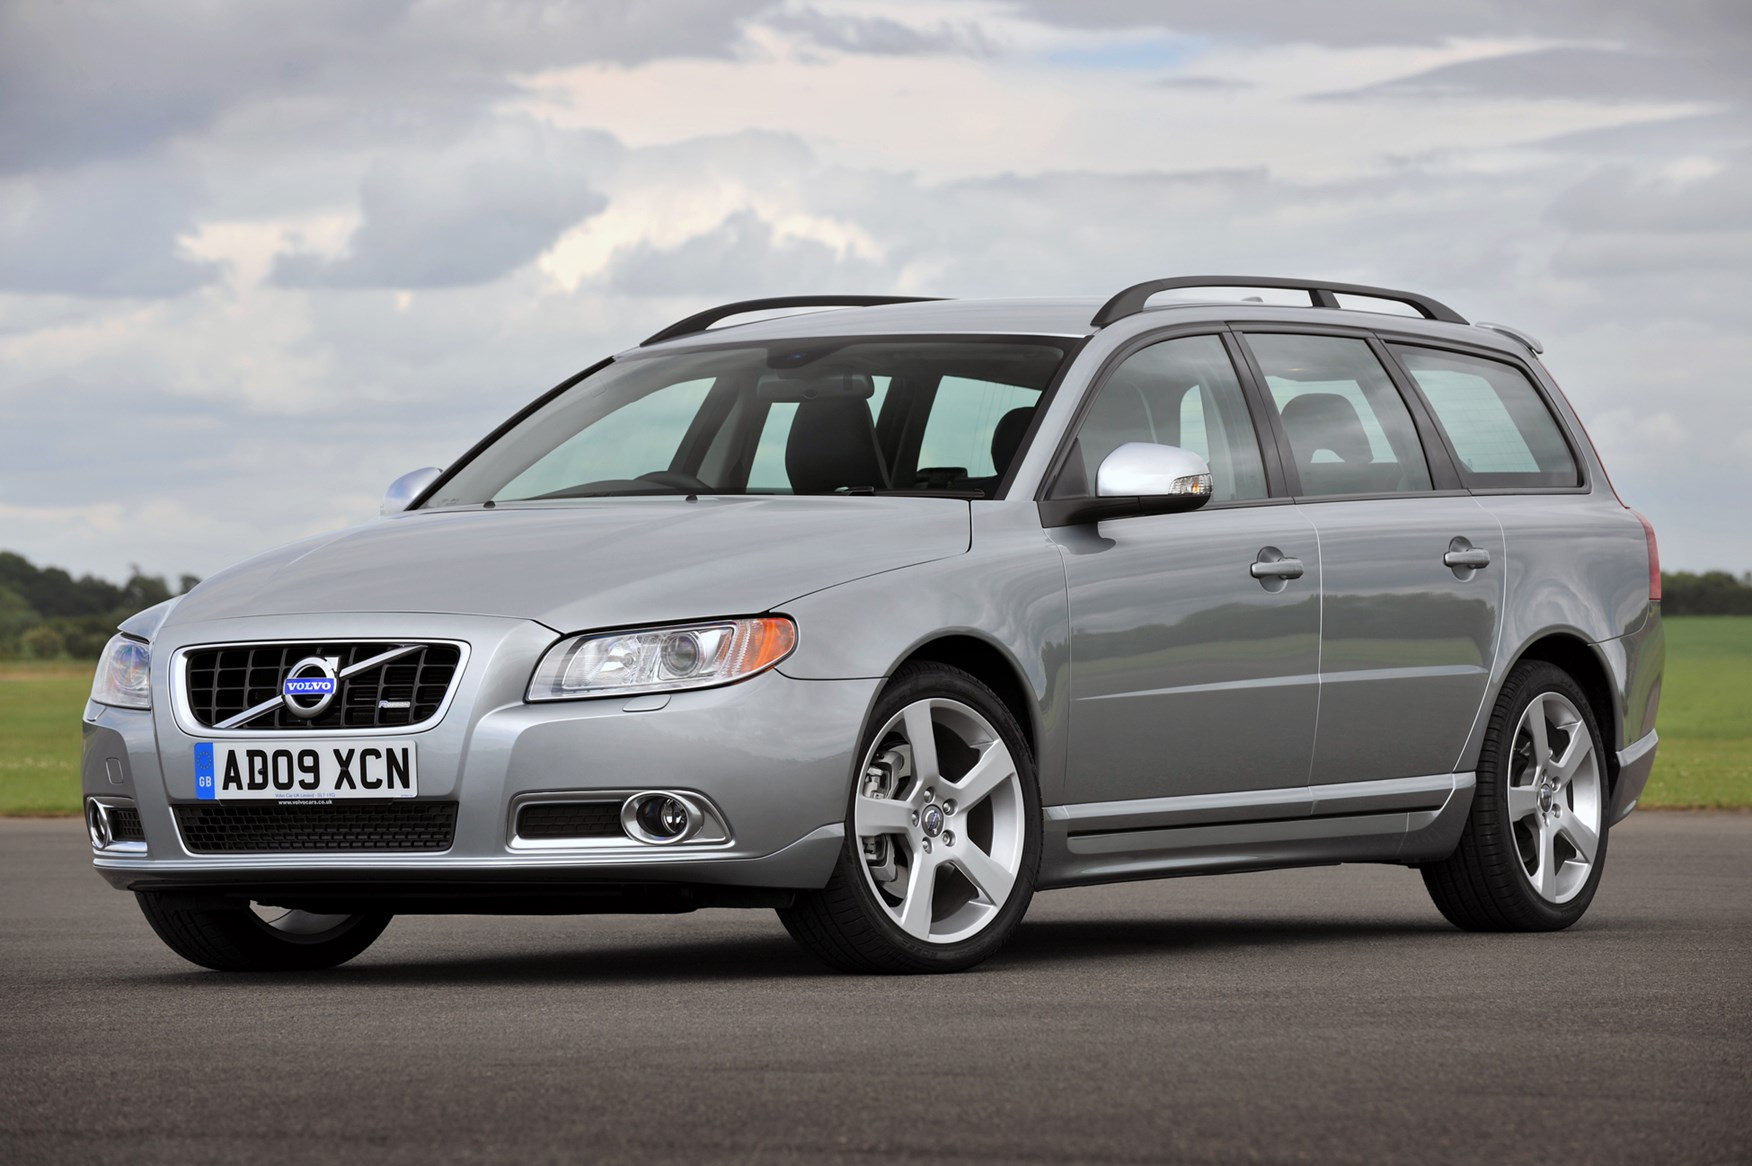 volvo v70 estate 2007 2016 photos parkers. Black Bedroom Furniture Sets. Home Design Ideas